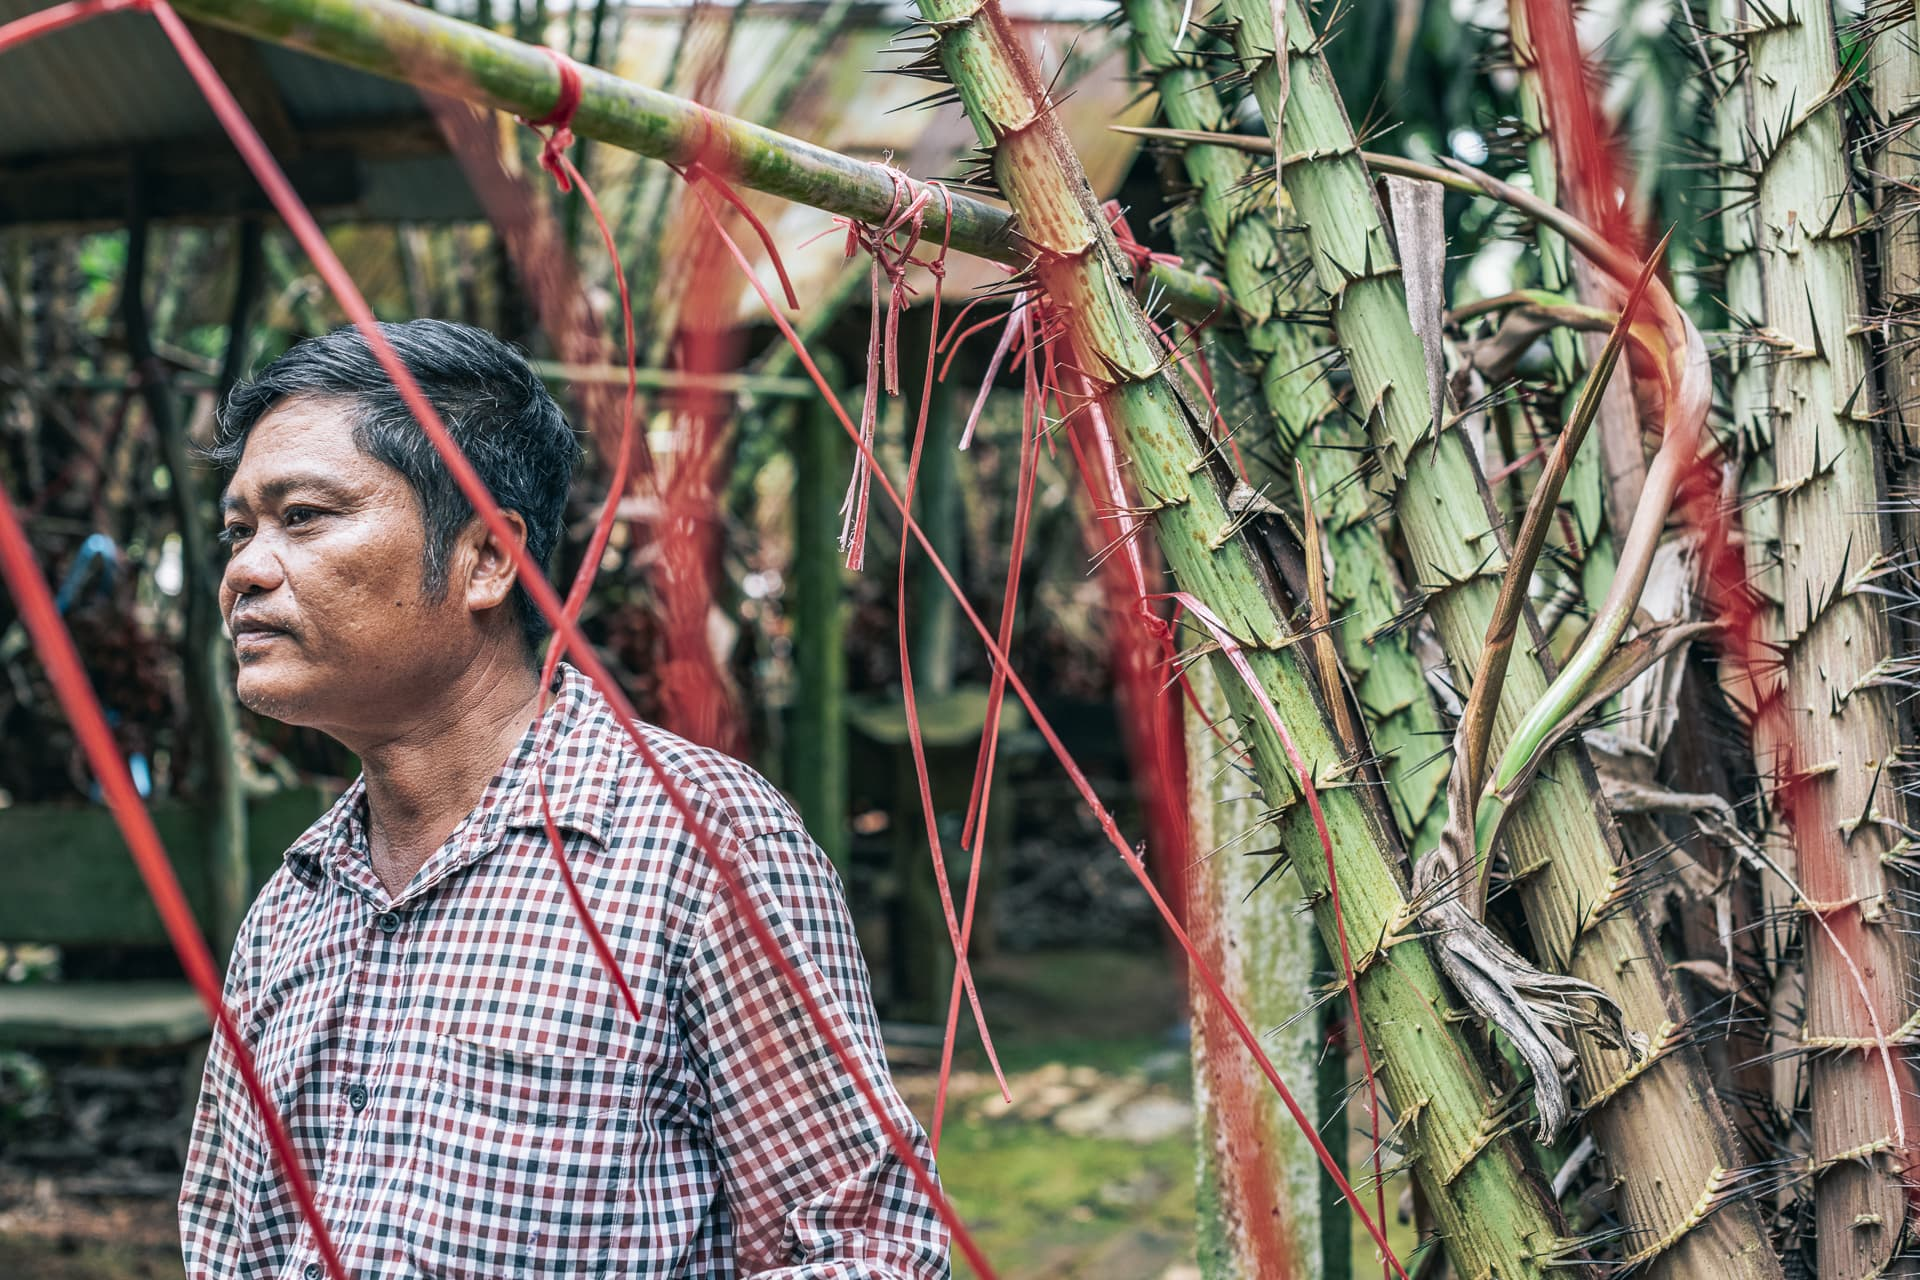 Salak farmer at Suan Lung Pichai, in the Rayong province.